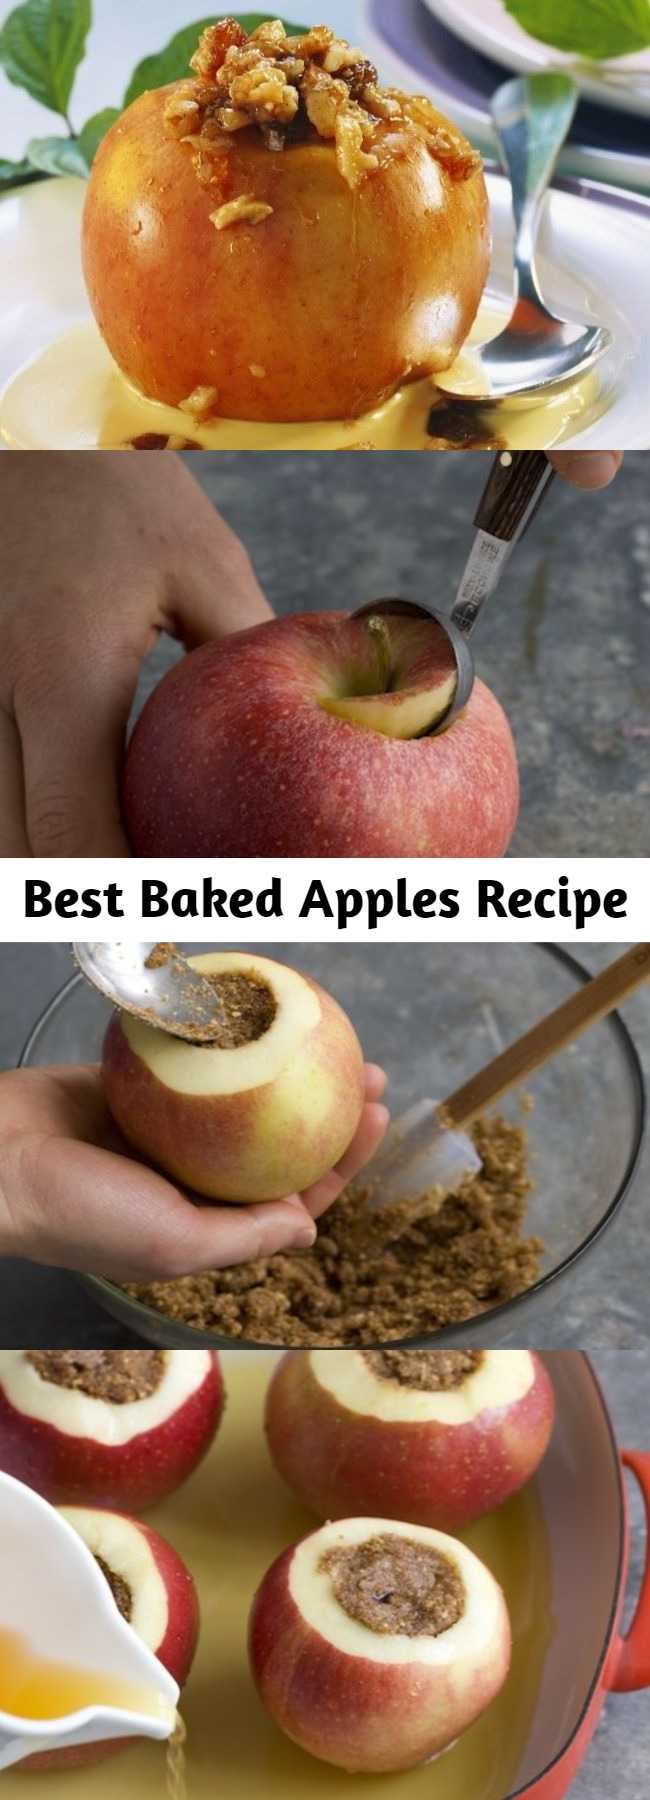 Best Baked Apples Recipe - Good warm or cold, they are a perfect make-ahead treat.